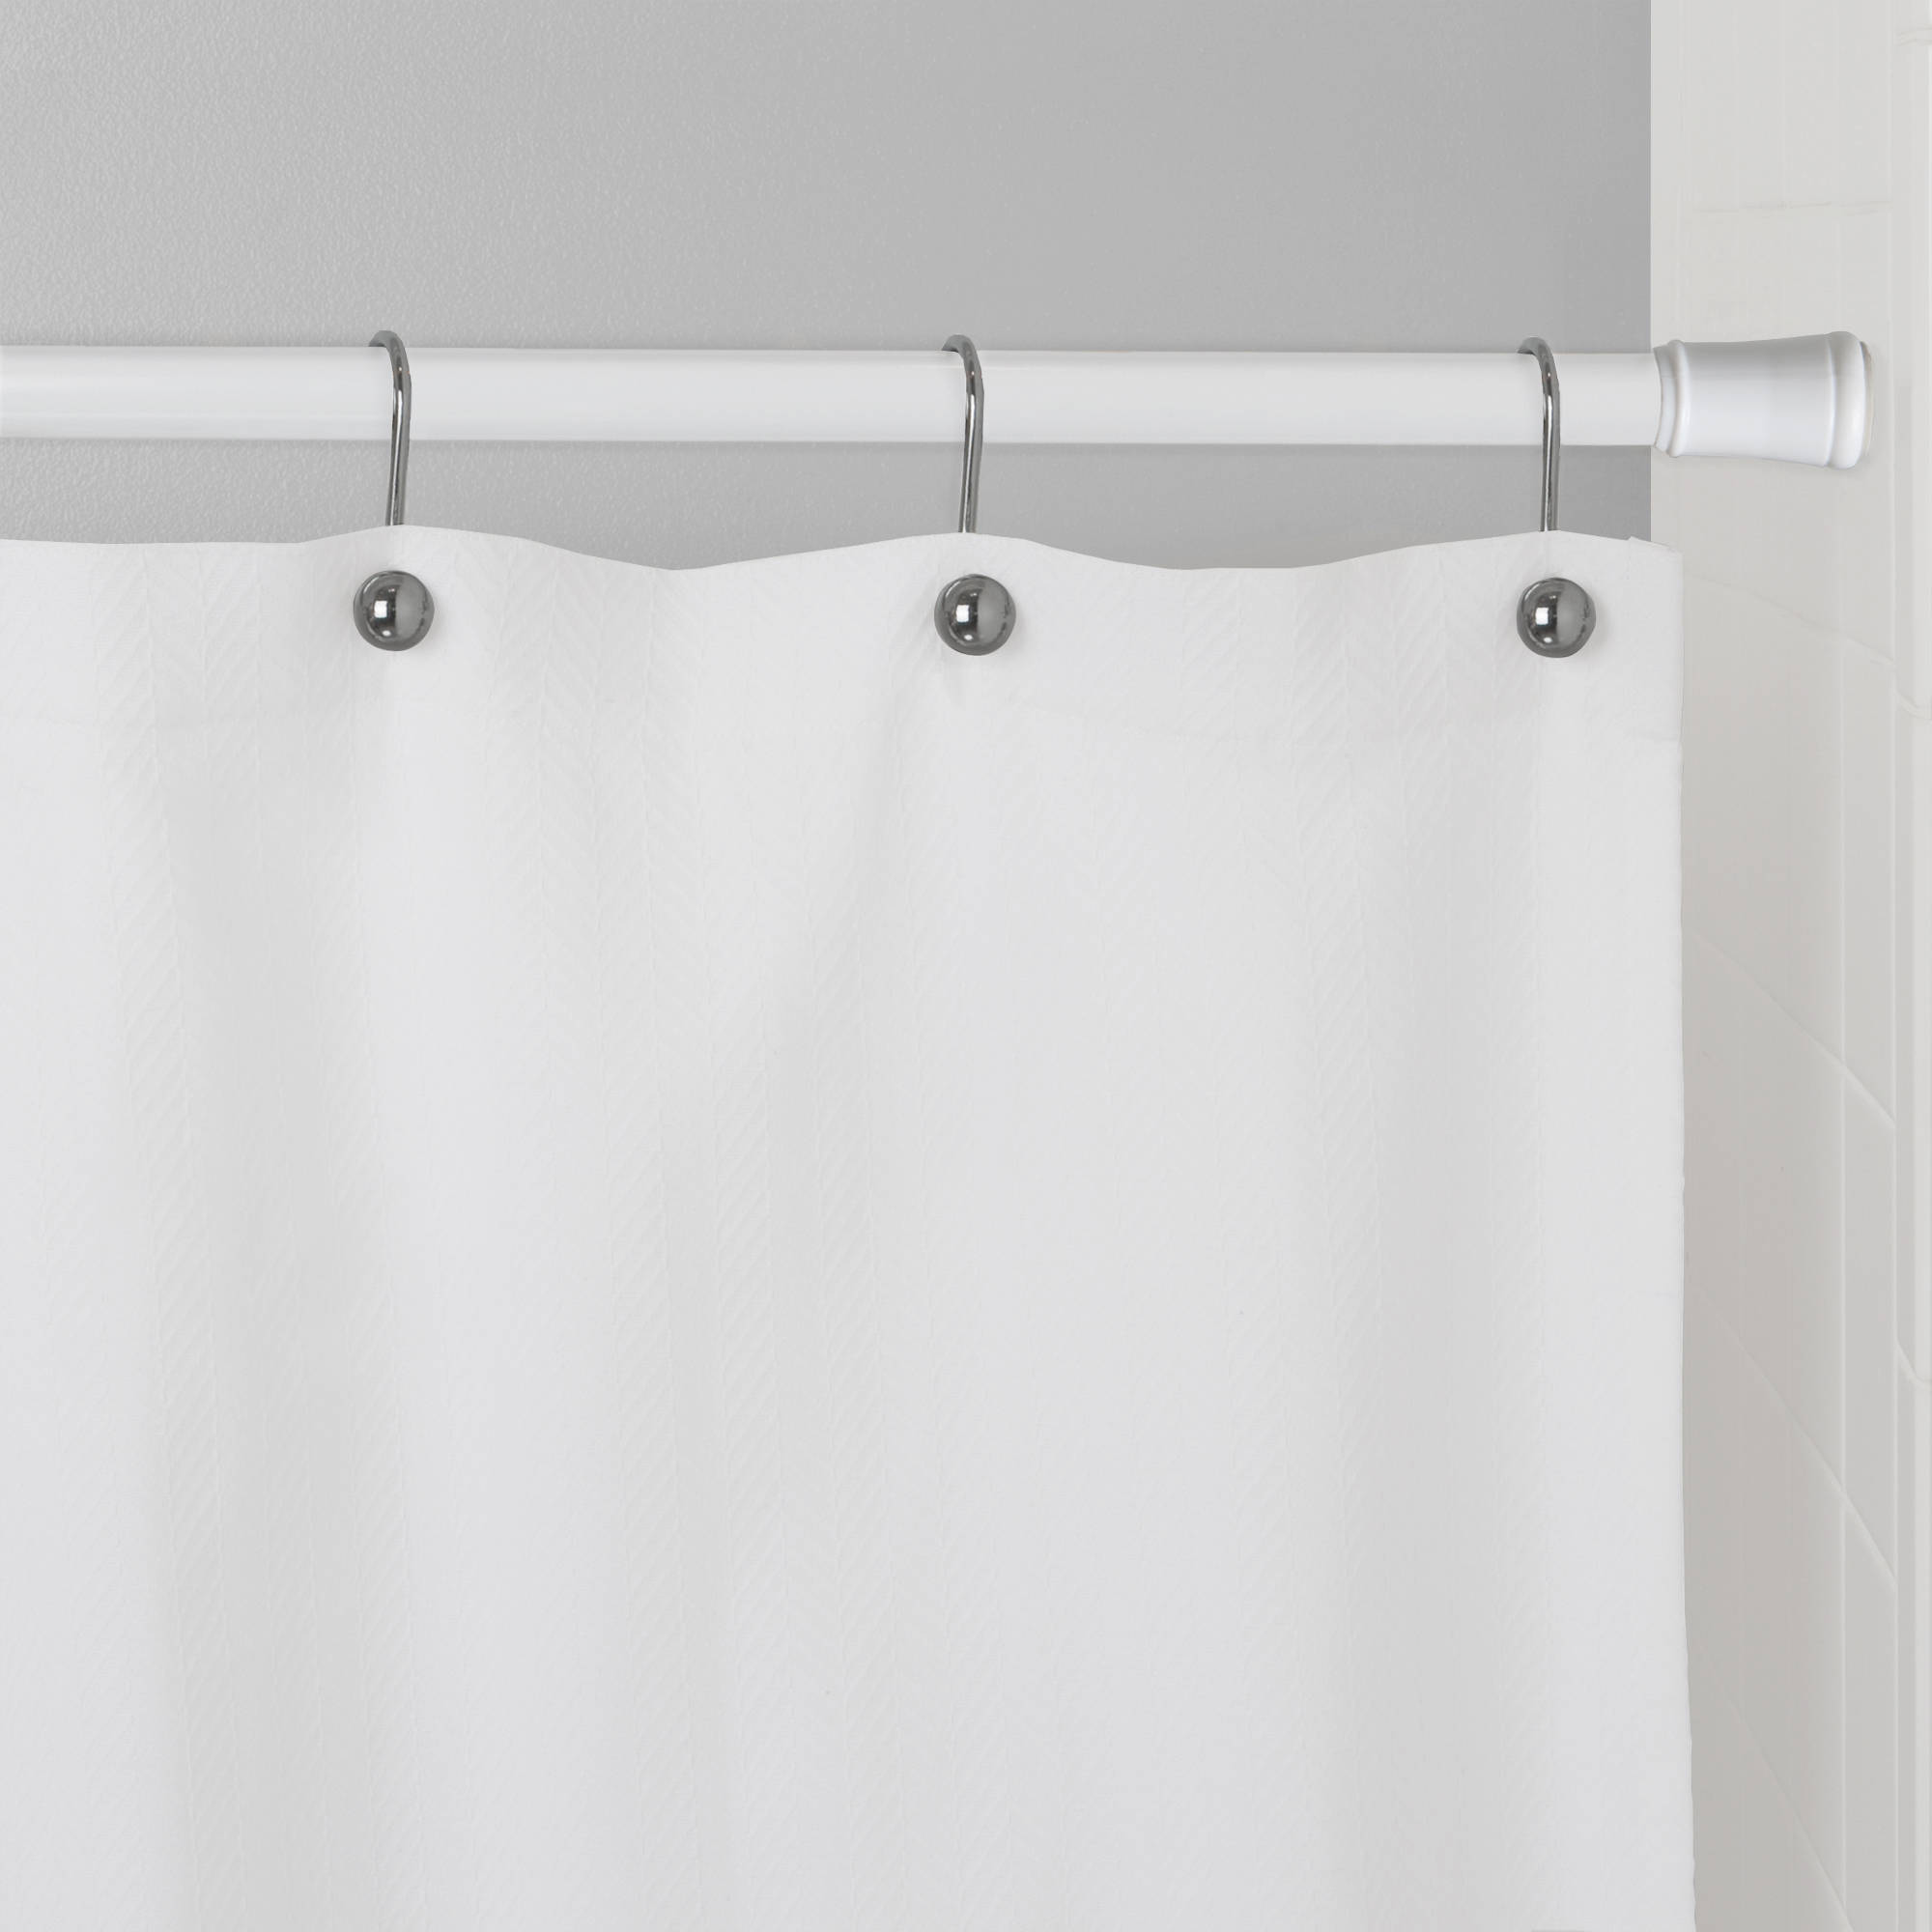 Exciting Bathroom Decor Ideas with Shower Curtain Tension Rod: Tension Curved Shower Curtain Rod | Permanent Shower Curtain Rod | Shower Curtain Tension Rod